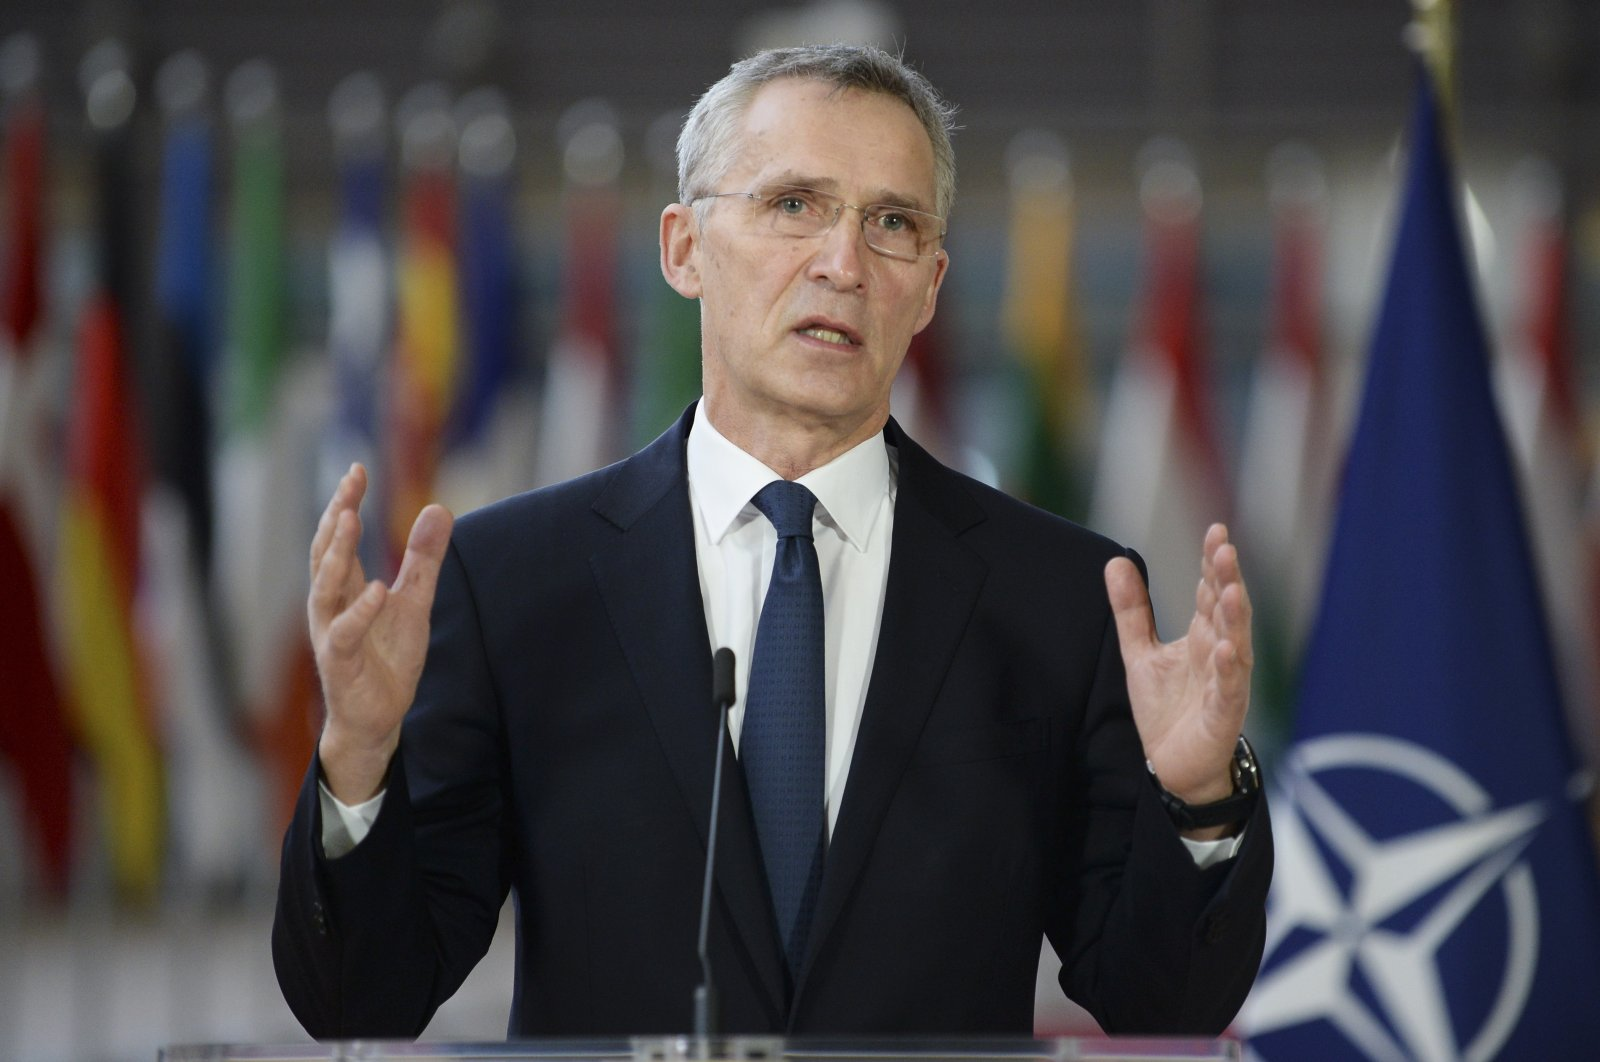 NATO Secretary-General Jens Stoltenberg speaks to the press ahead of a videoconference on security and defense and on the EU's Southern Neighborhood, in Brussels, Belgium, Feb. 26, 2021. (EPA File Photo)